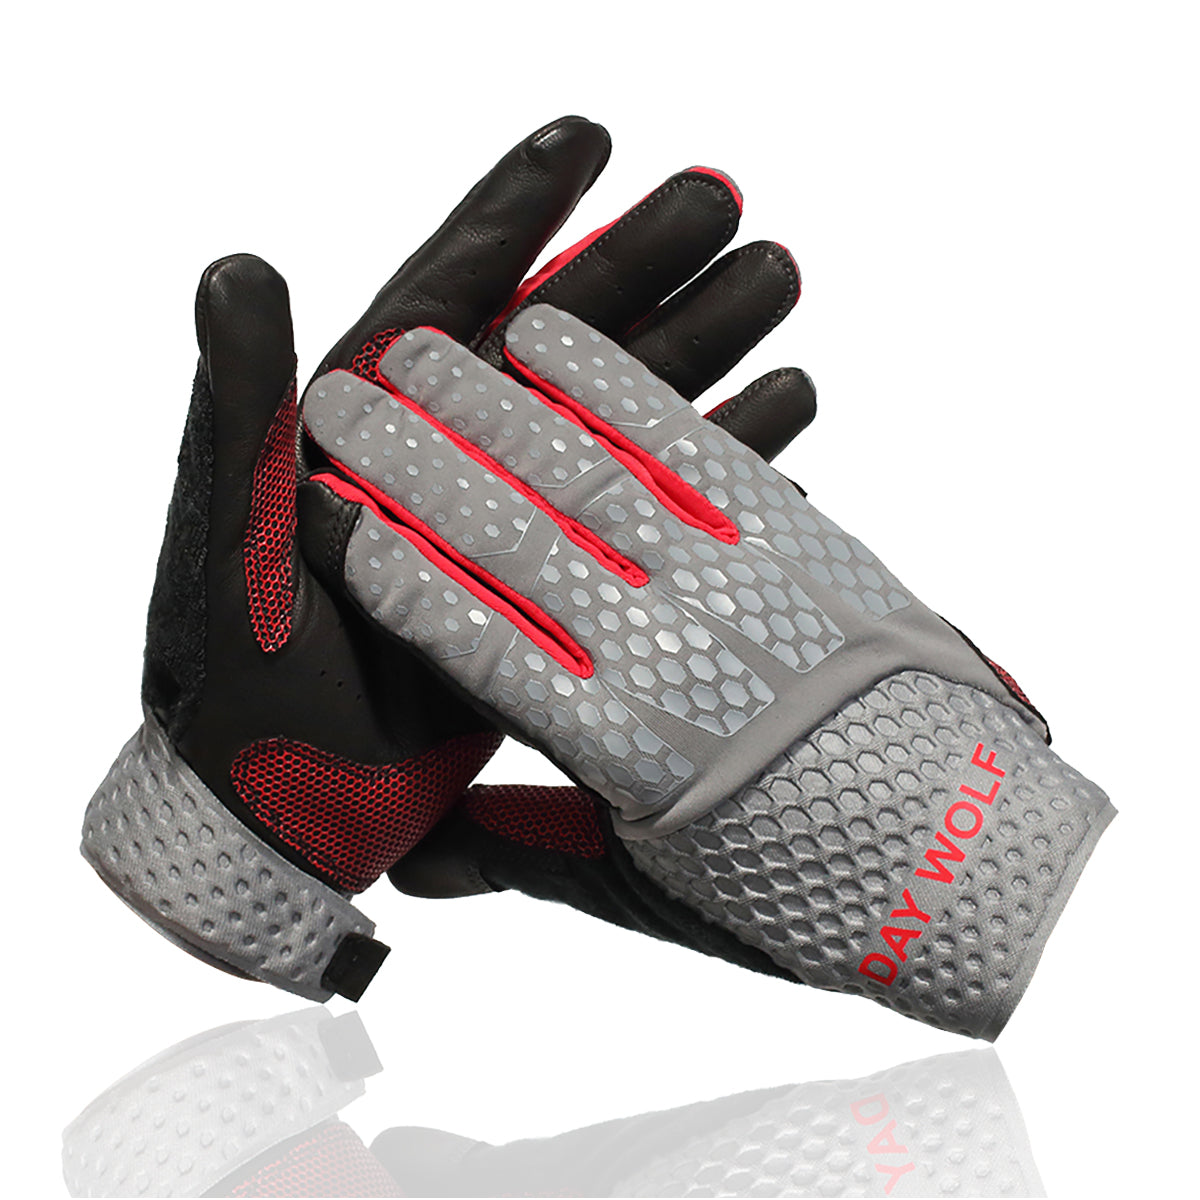 Full Finger Fitness Gloves Gym Workout Weight Lifting Exercise for Men & Women Red